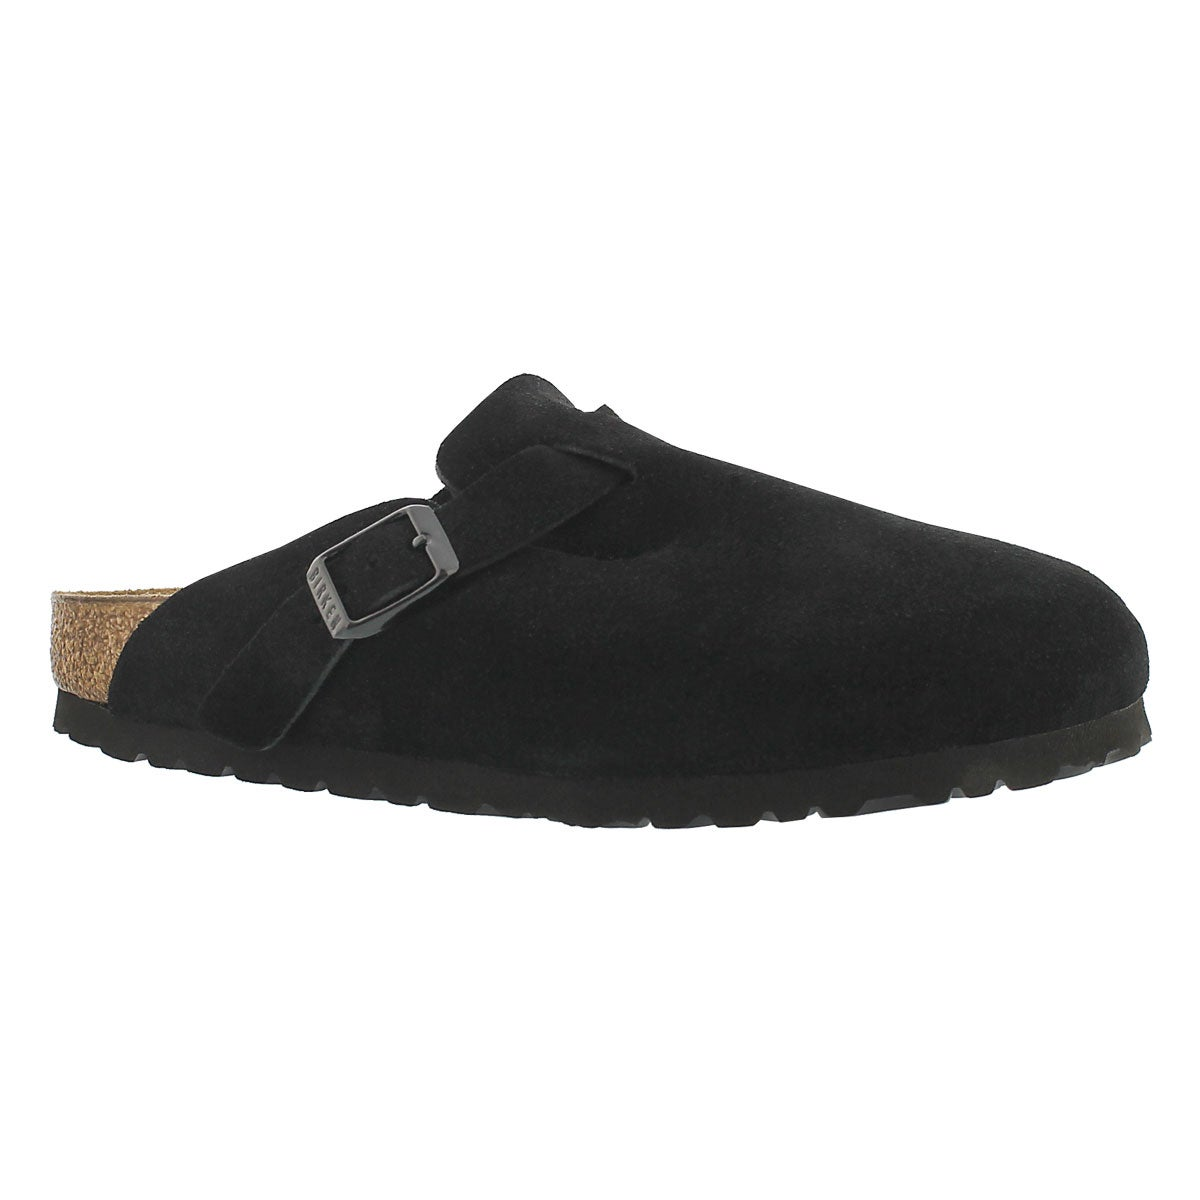 Women's BOSTON black suede clogs - Narrow